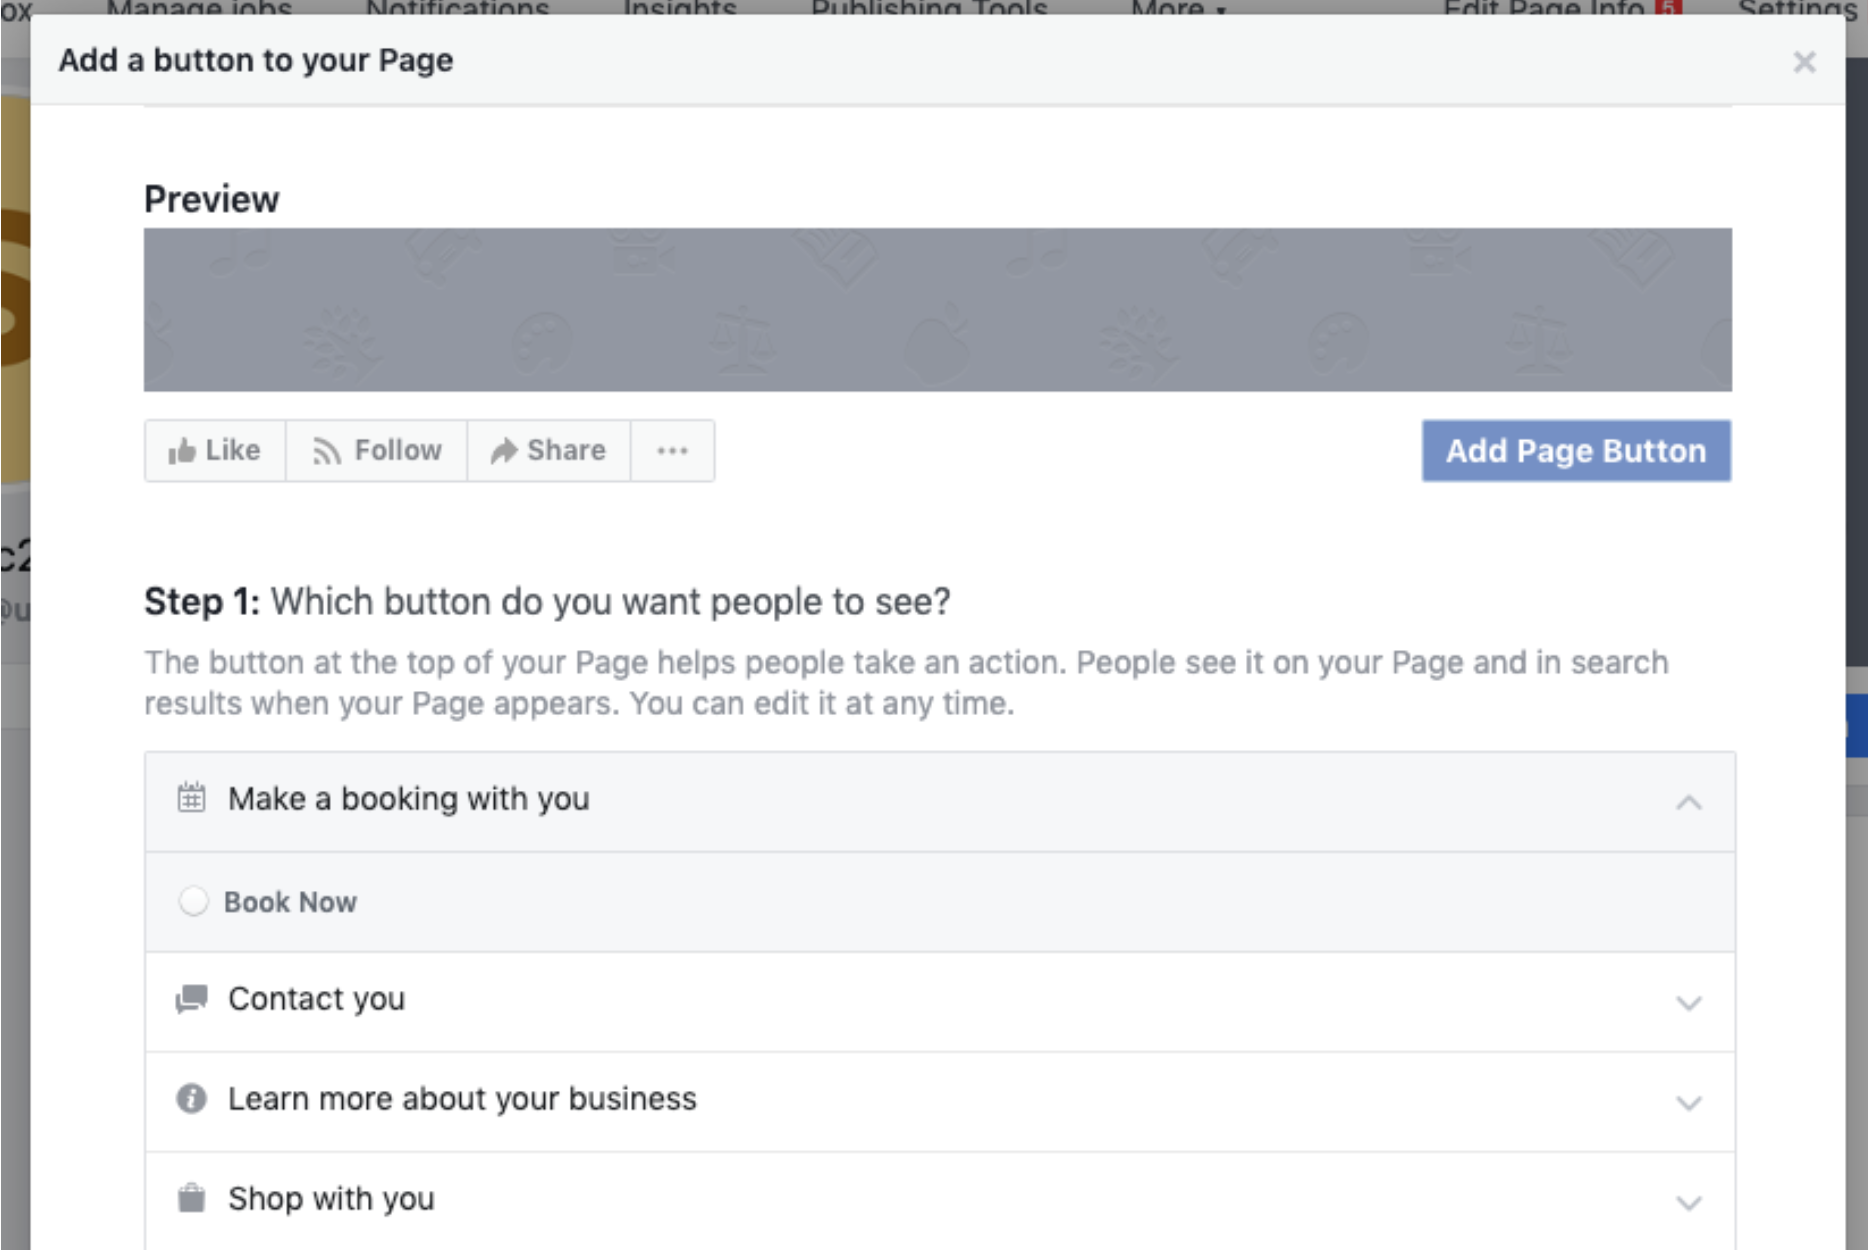 Example of adding a button to a business facebook page